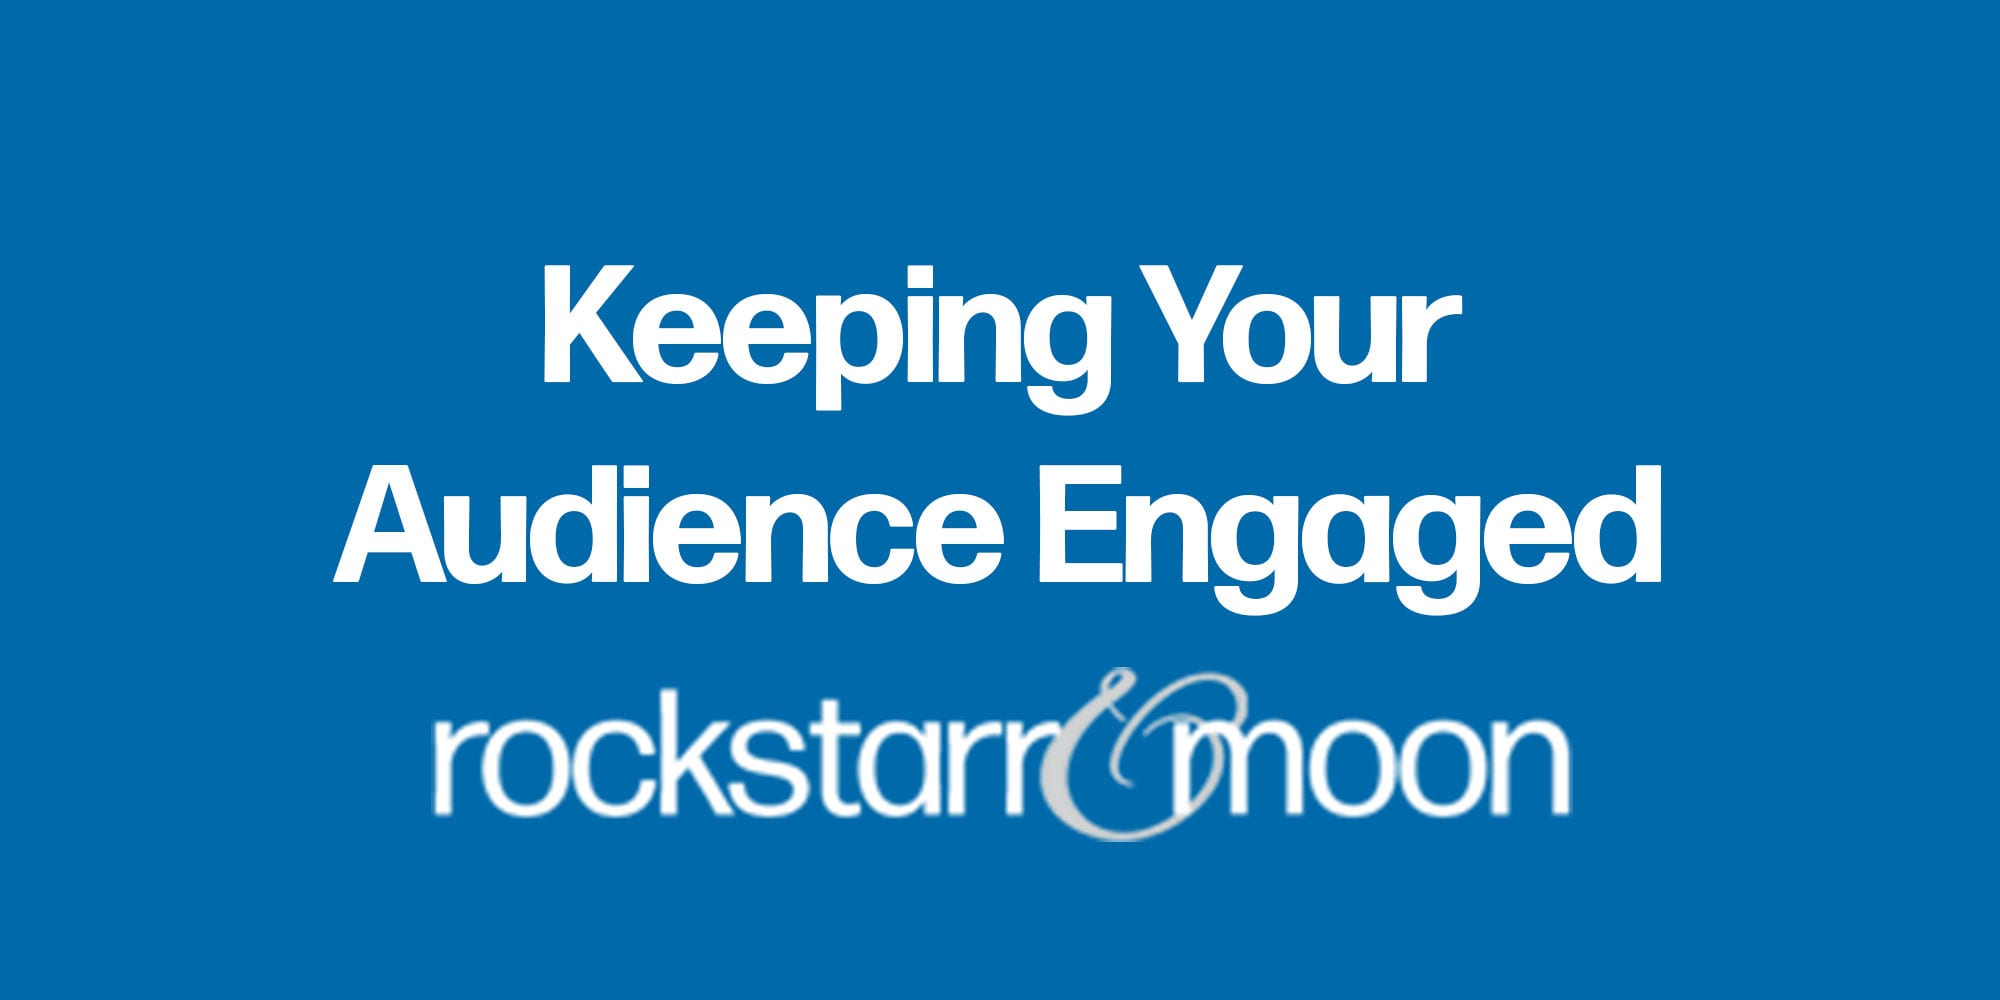 How to Keep Your Audience Engaged on Social Media: Step-by-step